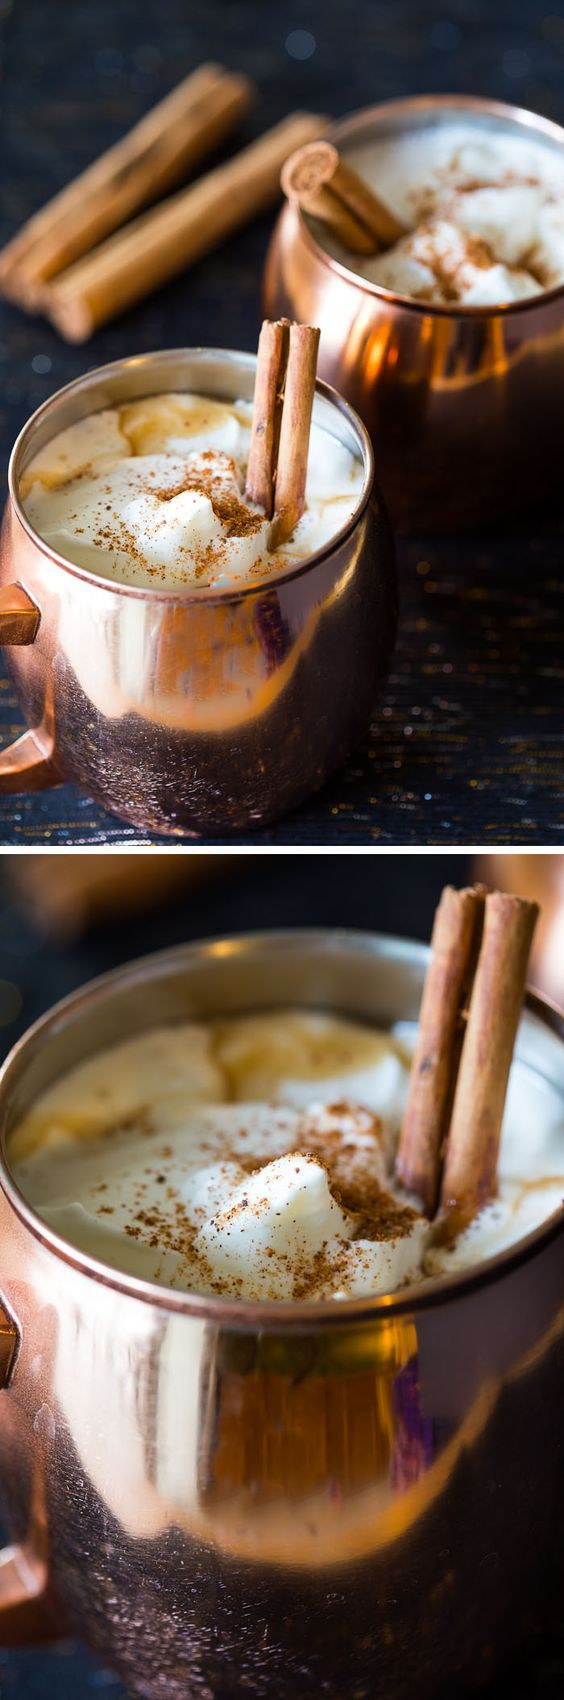 This hot buttered rum cocktail recipe packs a warm, festive punch. It's sweet, buttery, rich, and creamy. Make a big batch for the Christmas holidays.